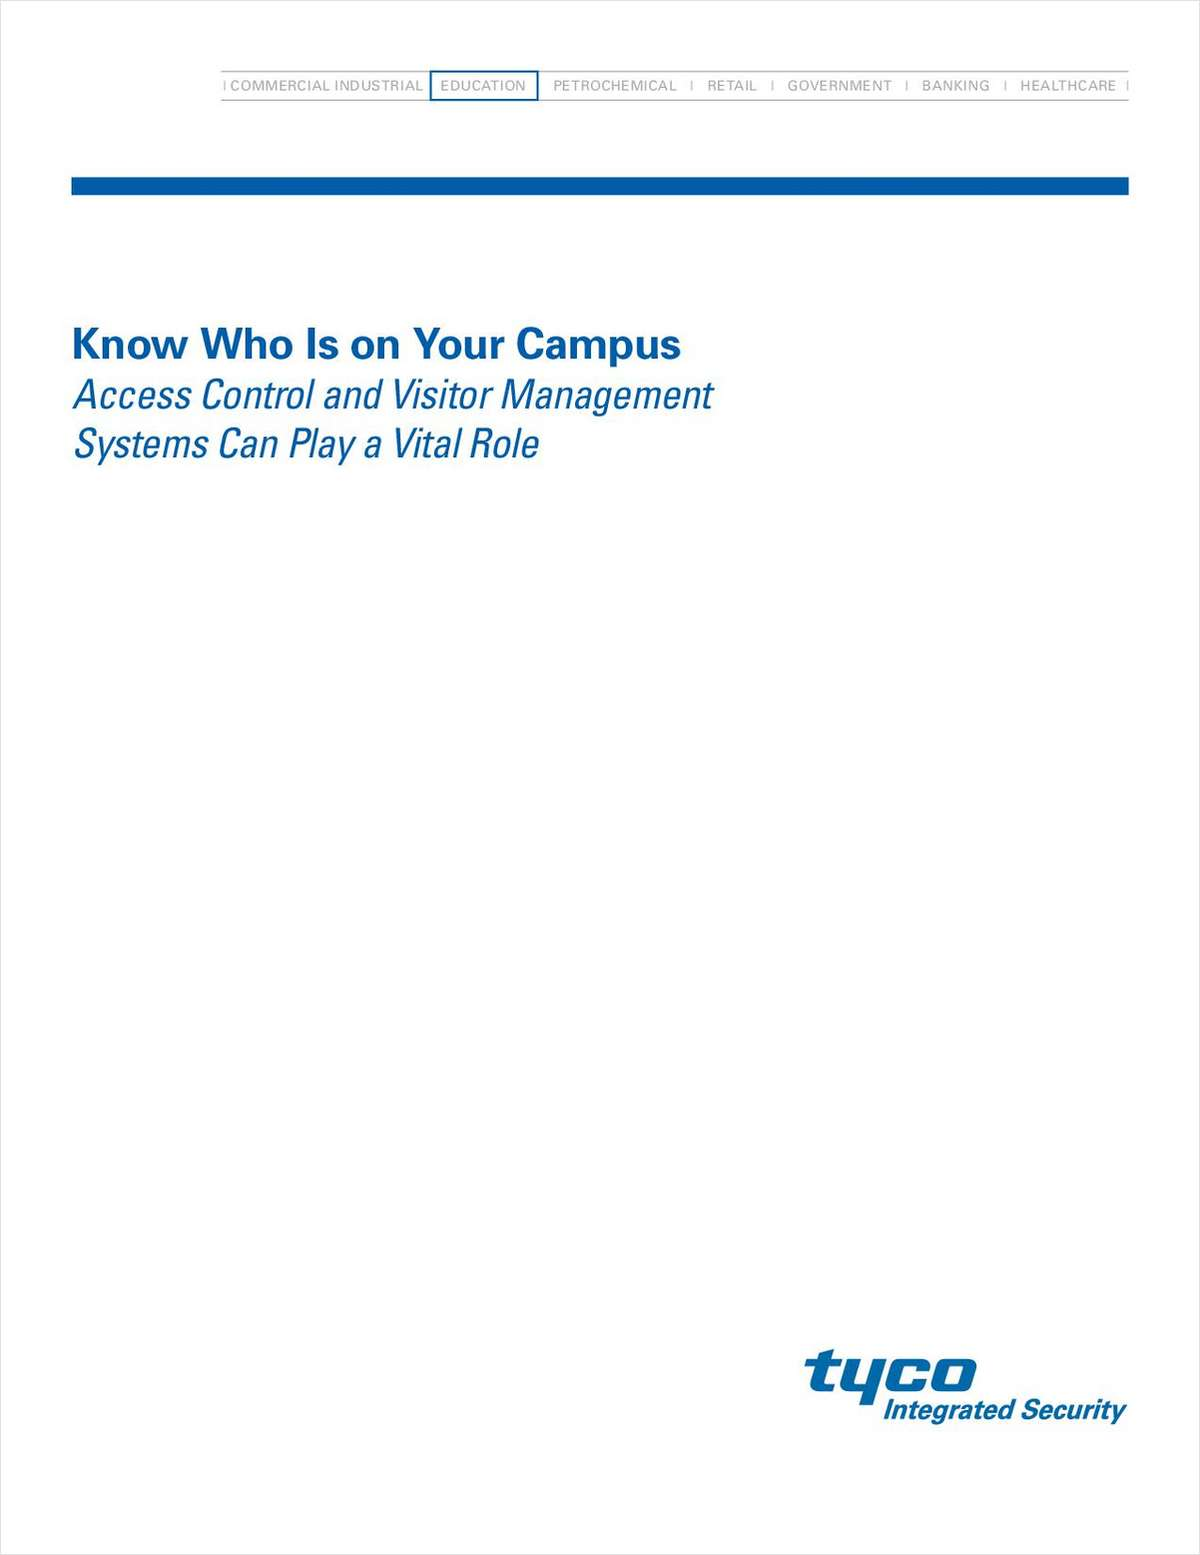 Campus Safety: Access Control and Visitor Management Systems are Vital